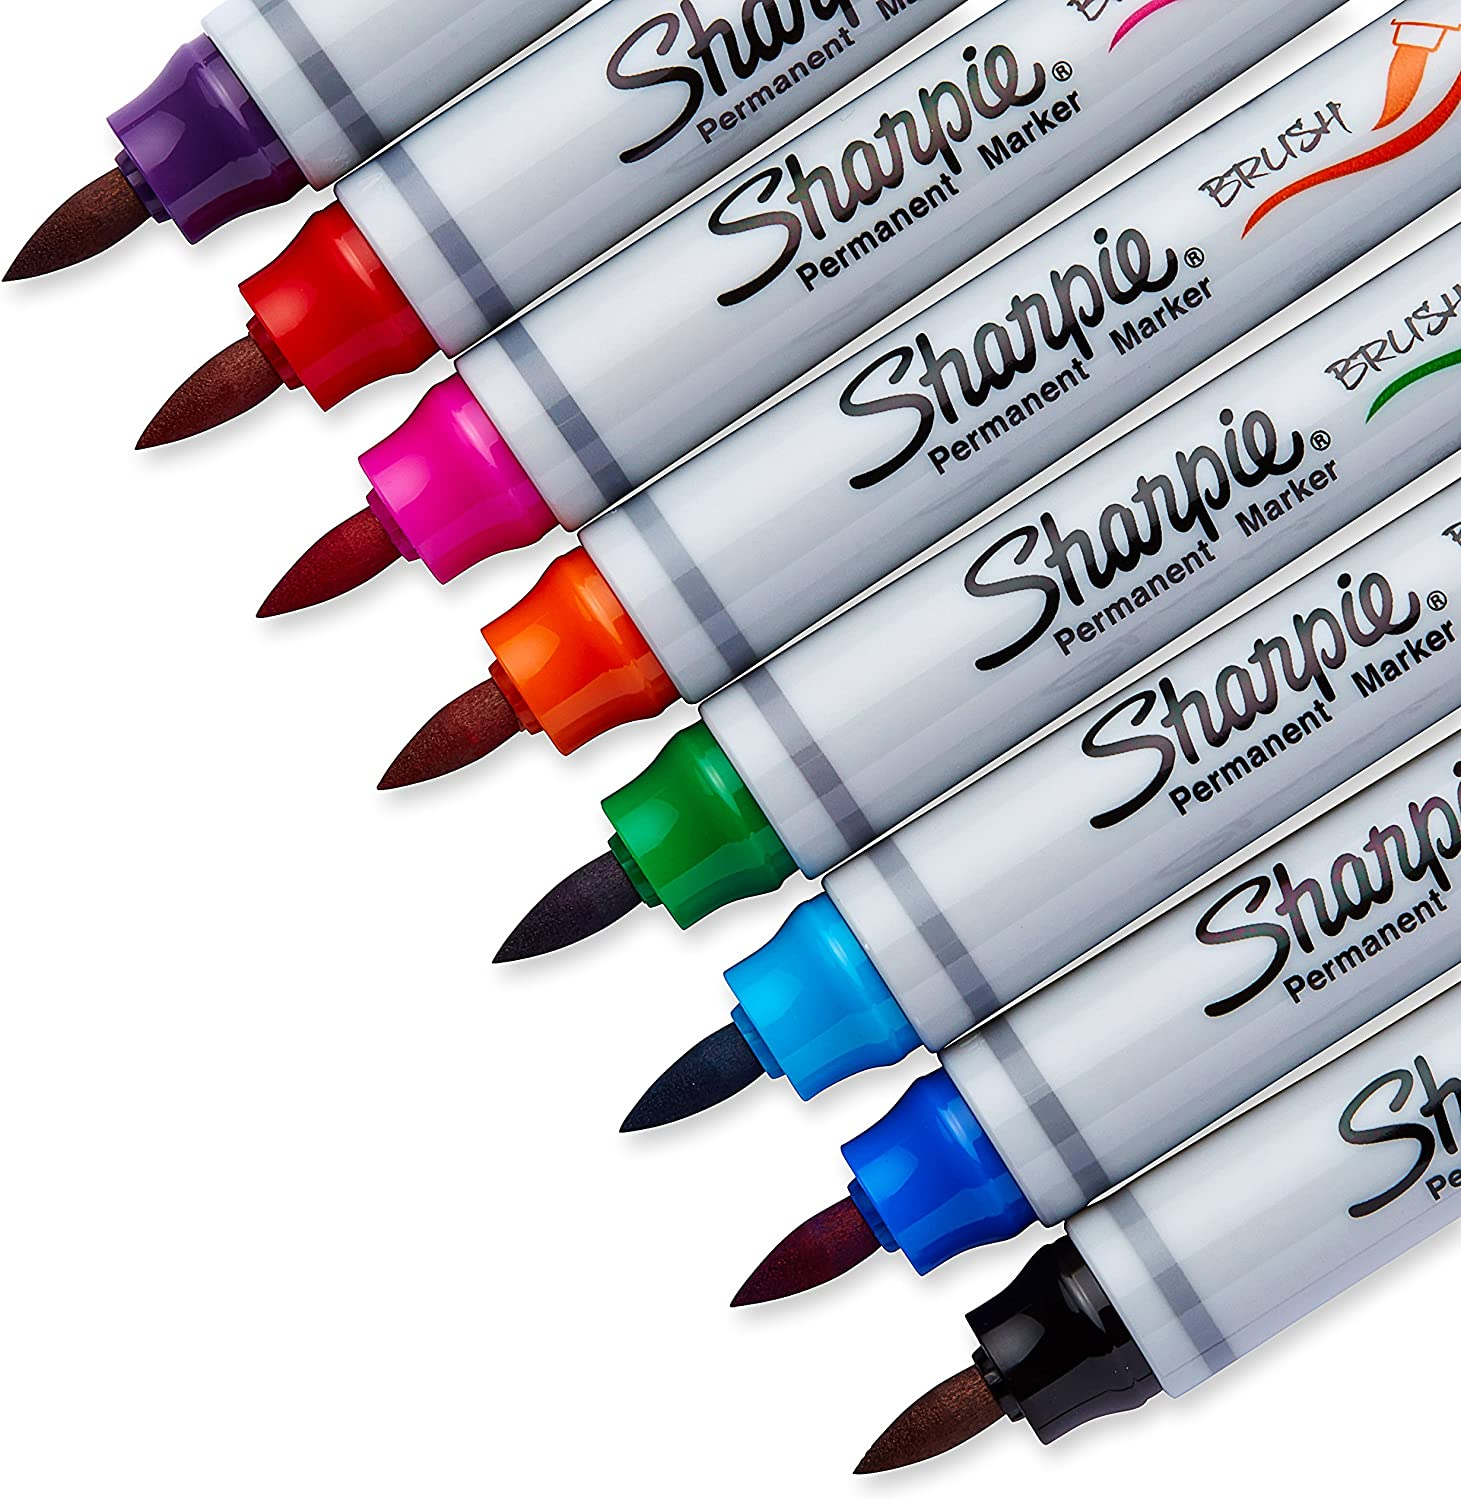 4-Pack Sharpie 1810701 Brush Tip Permanent Marker Assorted Colors